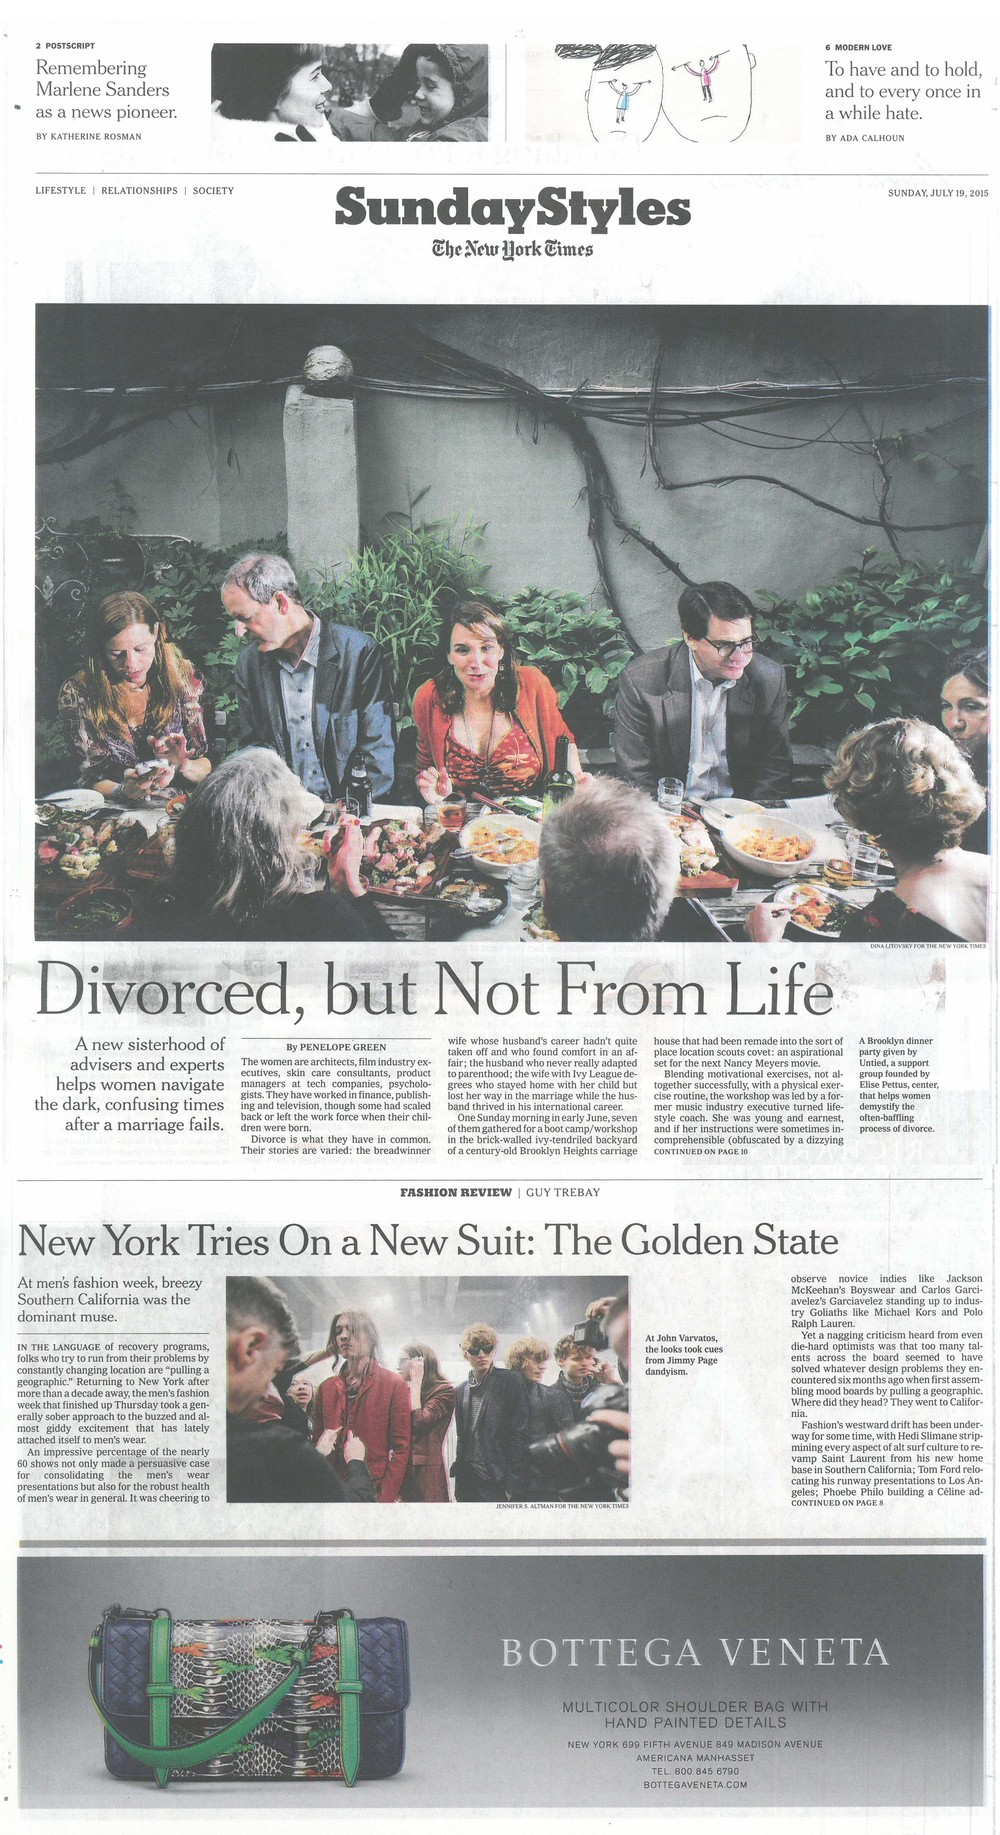 New York Times Sunday Styles 7.19.15 COVER.jpg